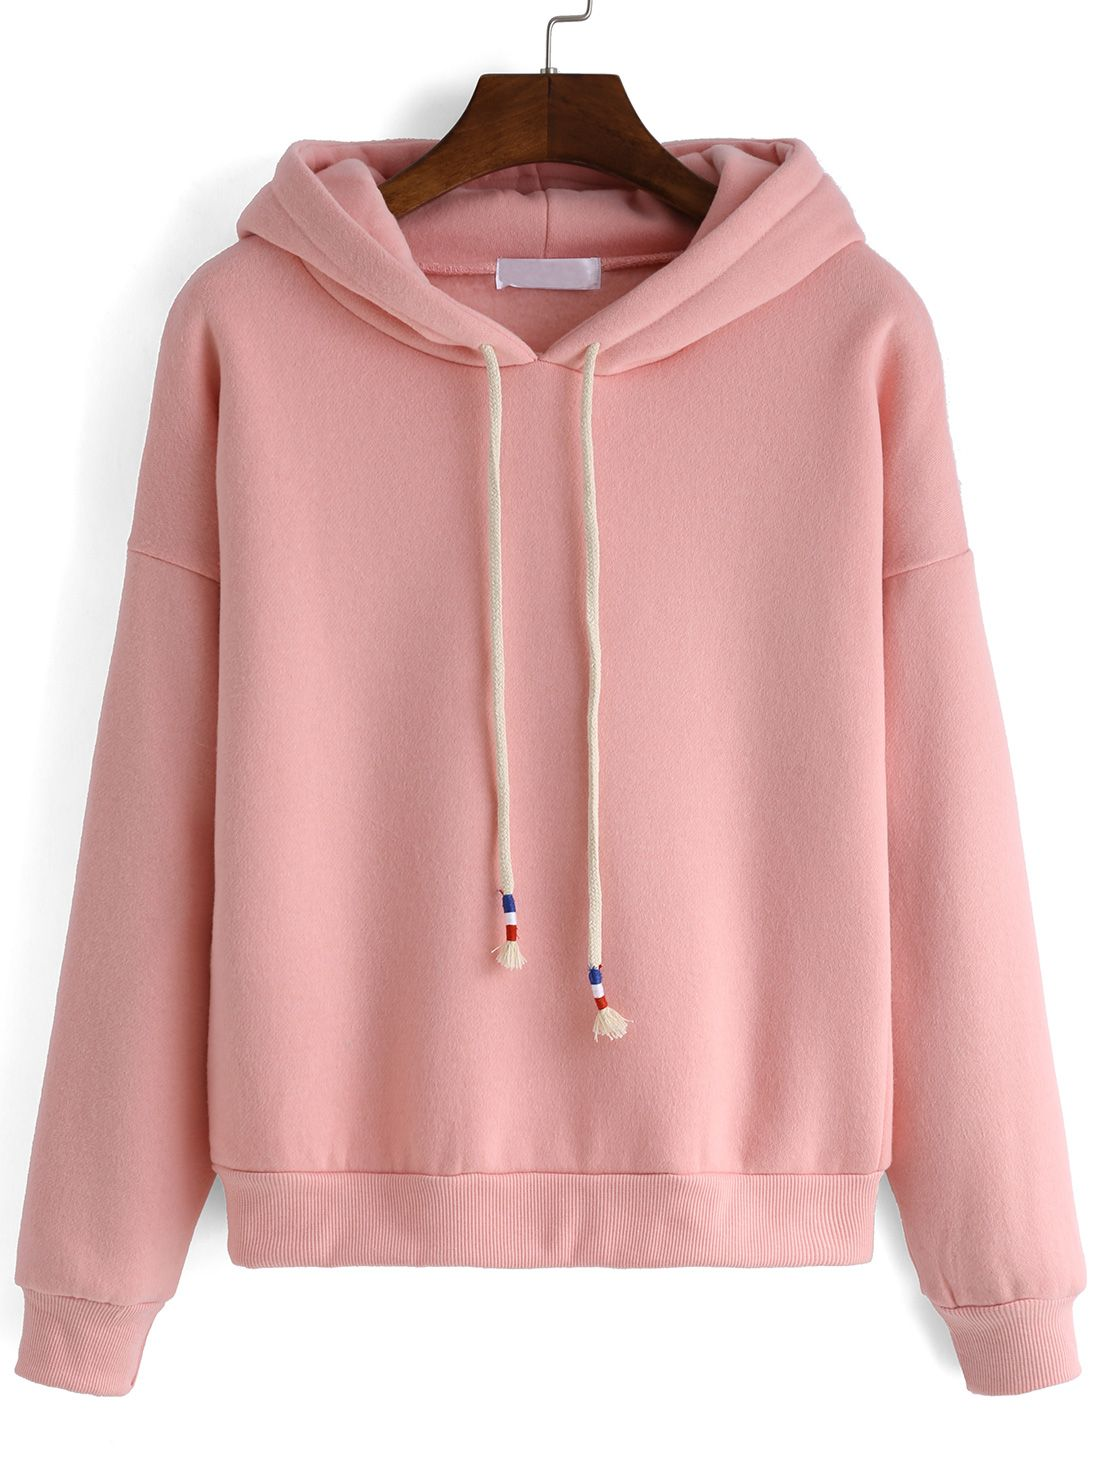 bc9c9a6caaf Hooded Drawstring Loose Pink Sweatshirt | Closet wish | Fashion ...